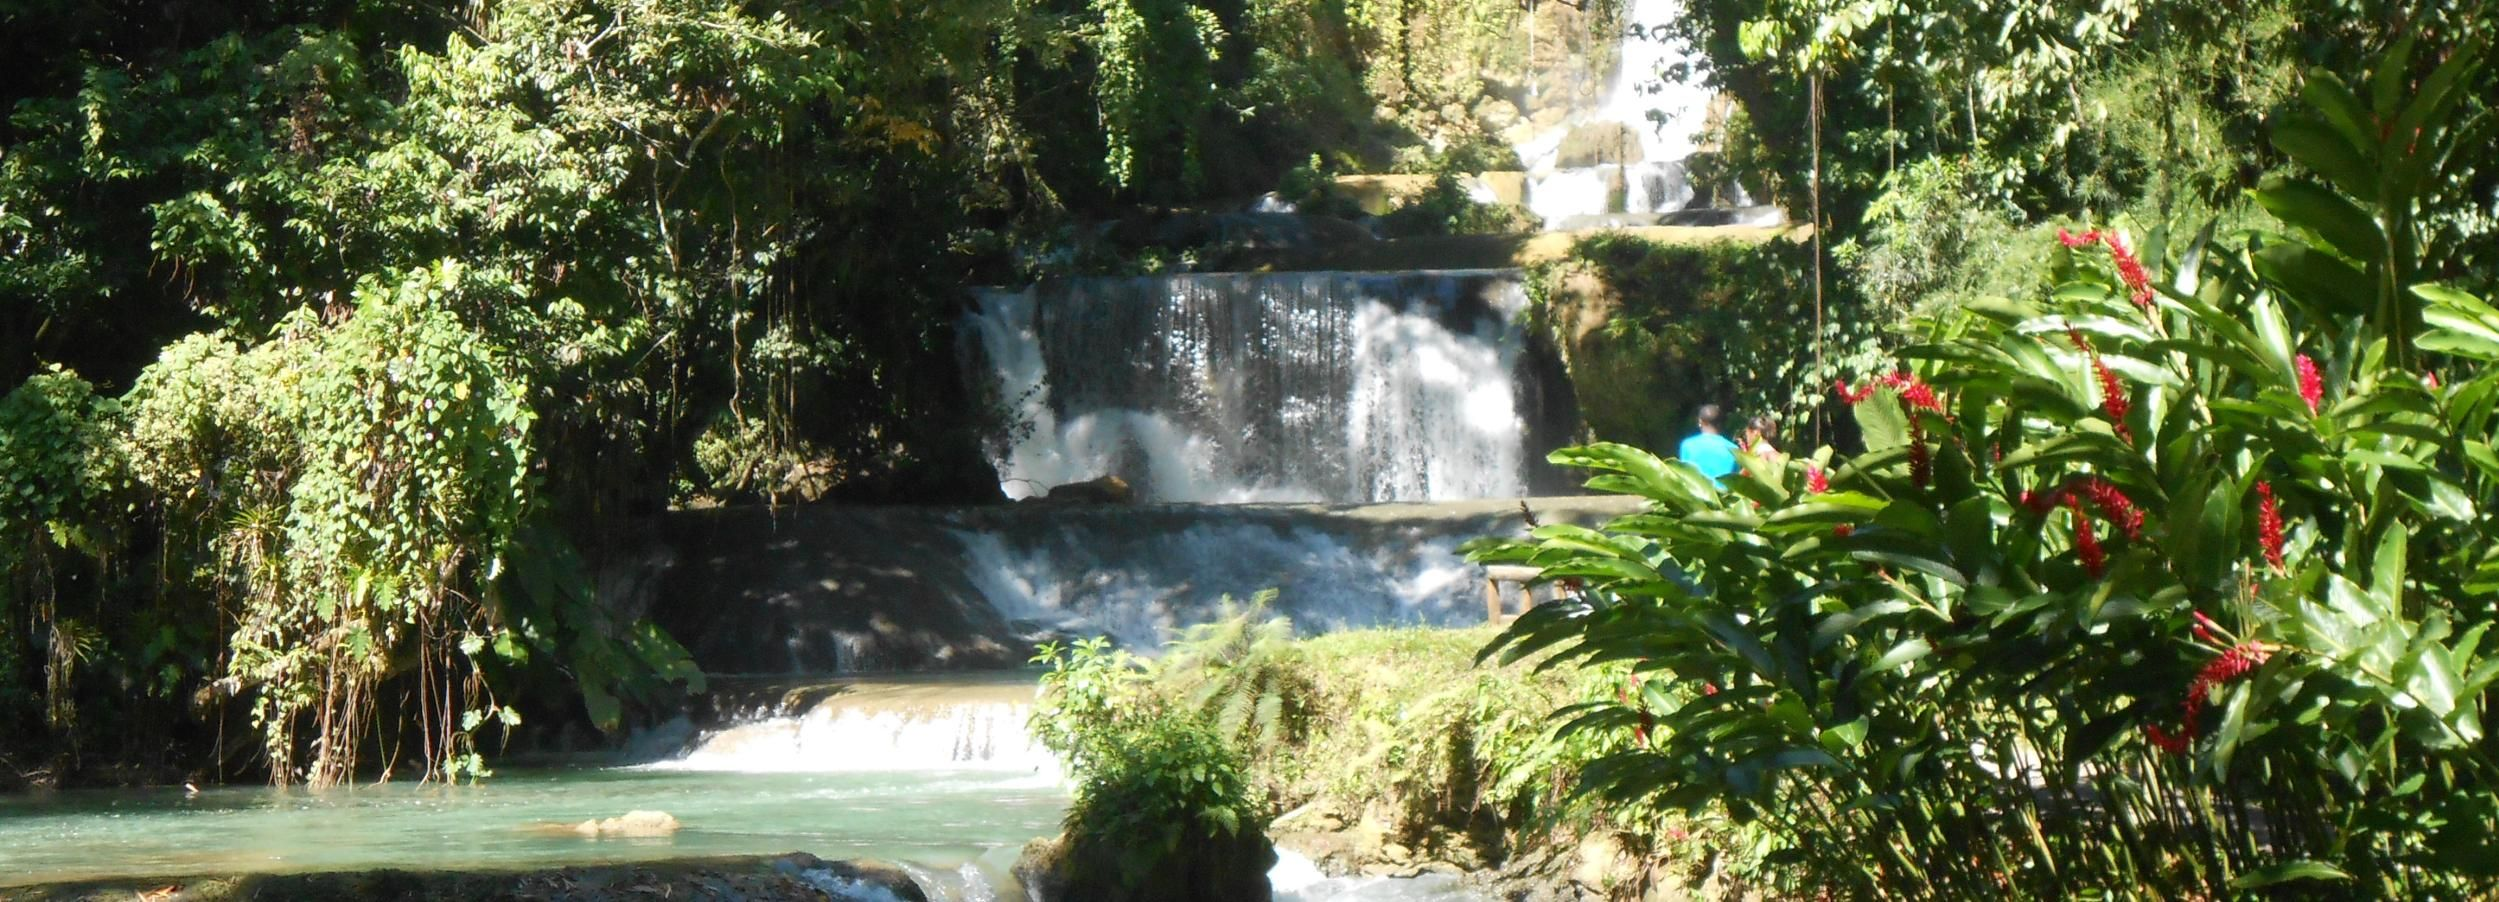 St Elizabeth: River Safari and Y.S. Falls with Lunch